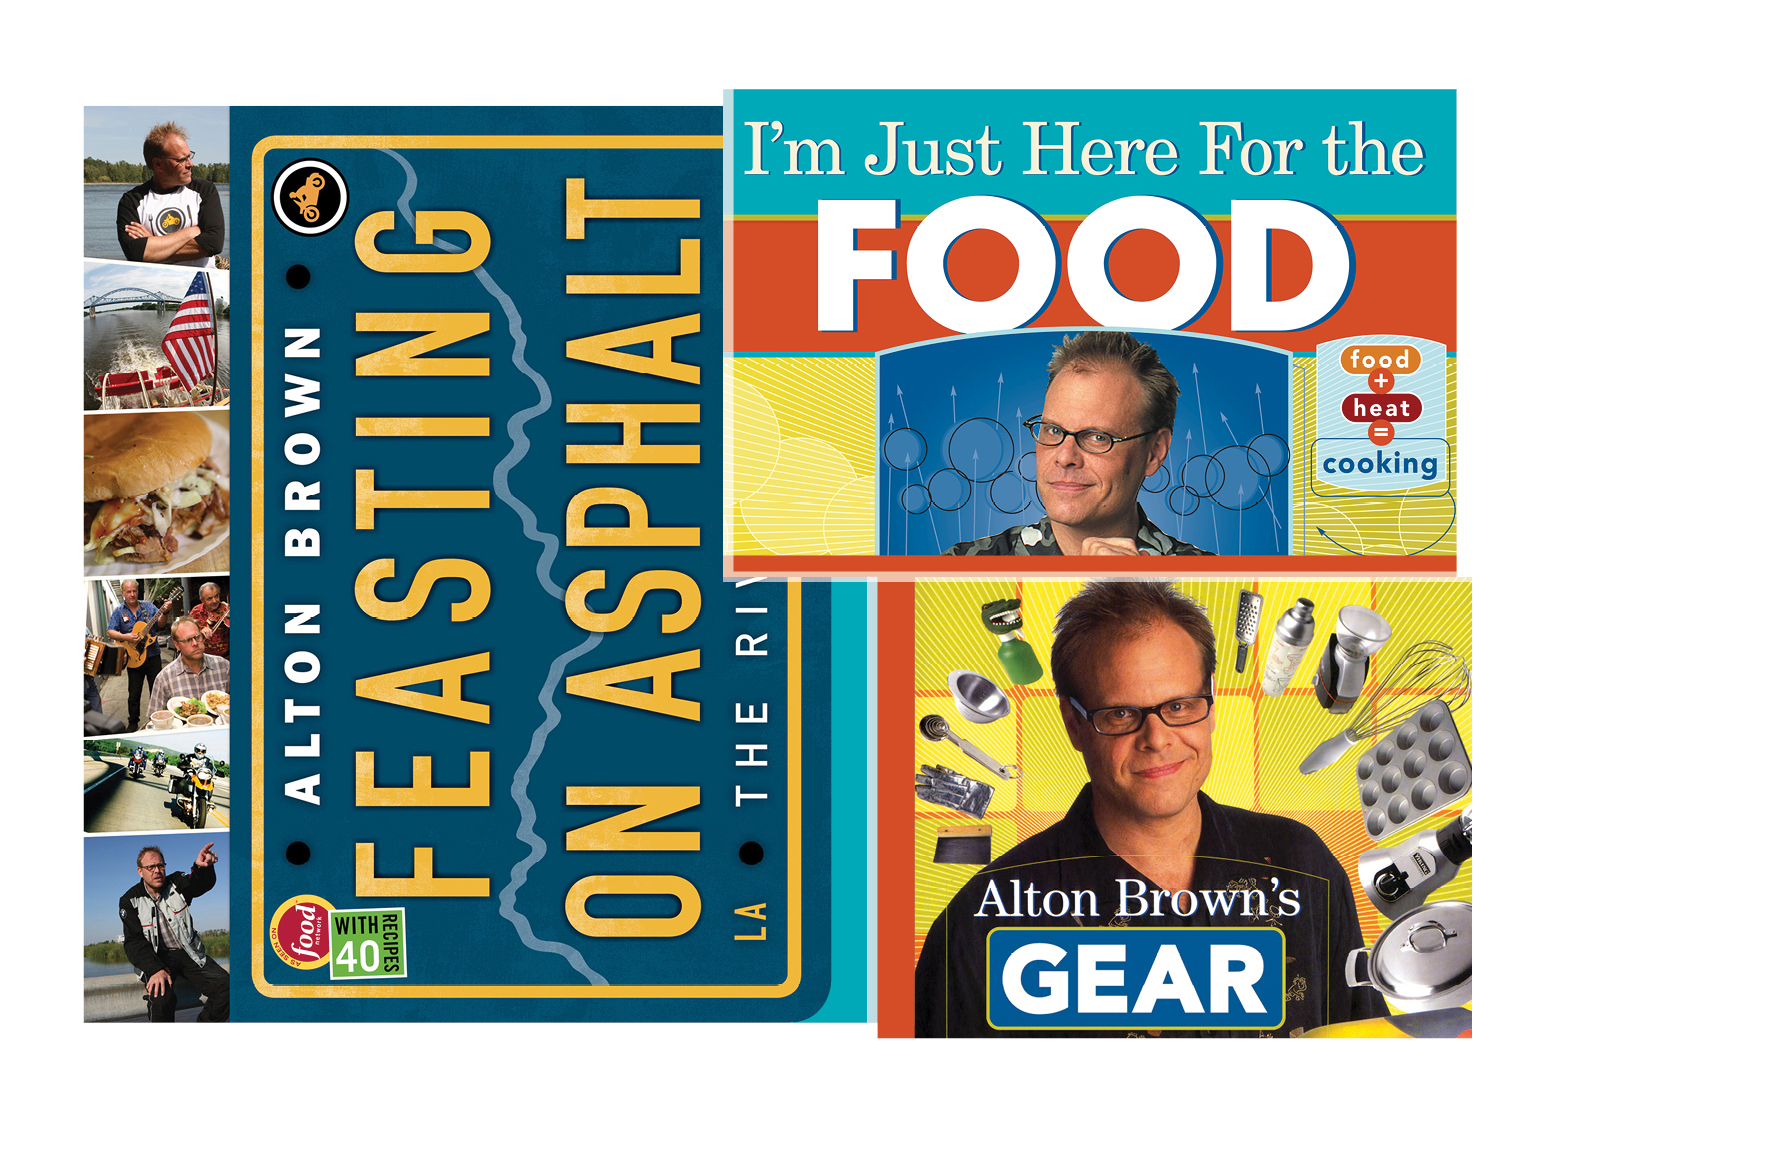 Alton Brown publishing program -   Feasting on Asphalt,  I'm Just Here For the Food, Alton Brown's Gear For Your Kitchen